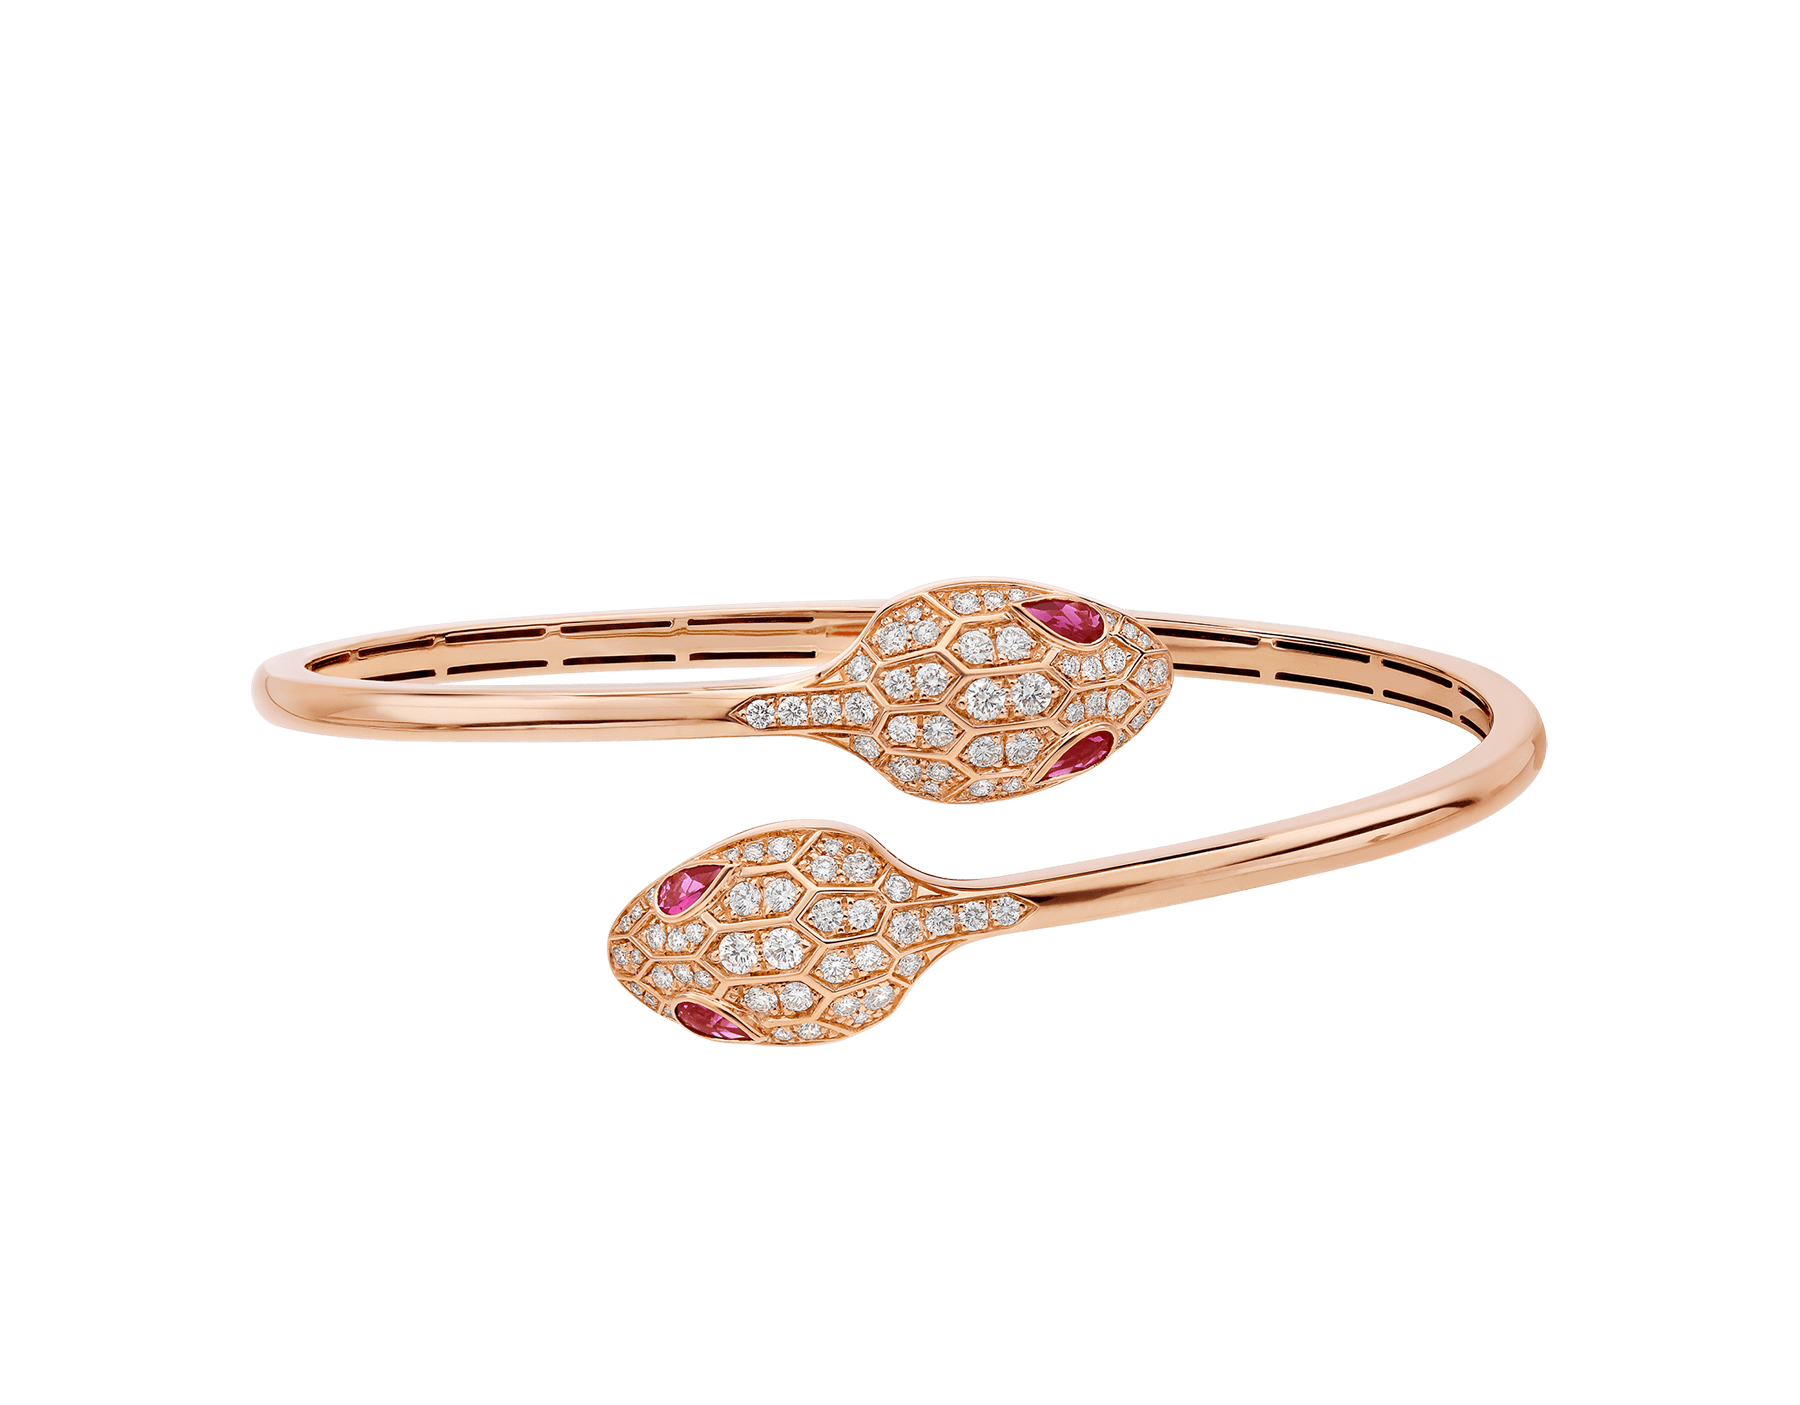 Bracelet Serpenti en or rose 18 K avec yeux en rubellite (0,45 ct) et pavé diamants (1,09 ct) BR858550 image 2